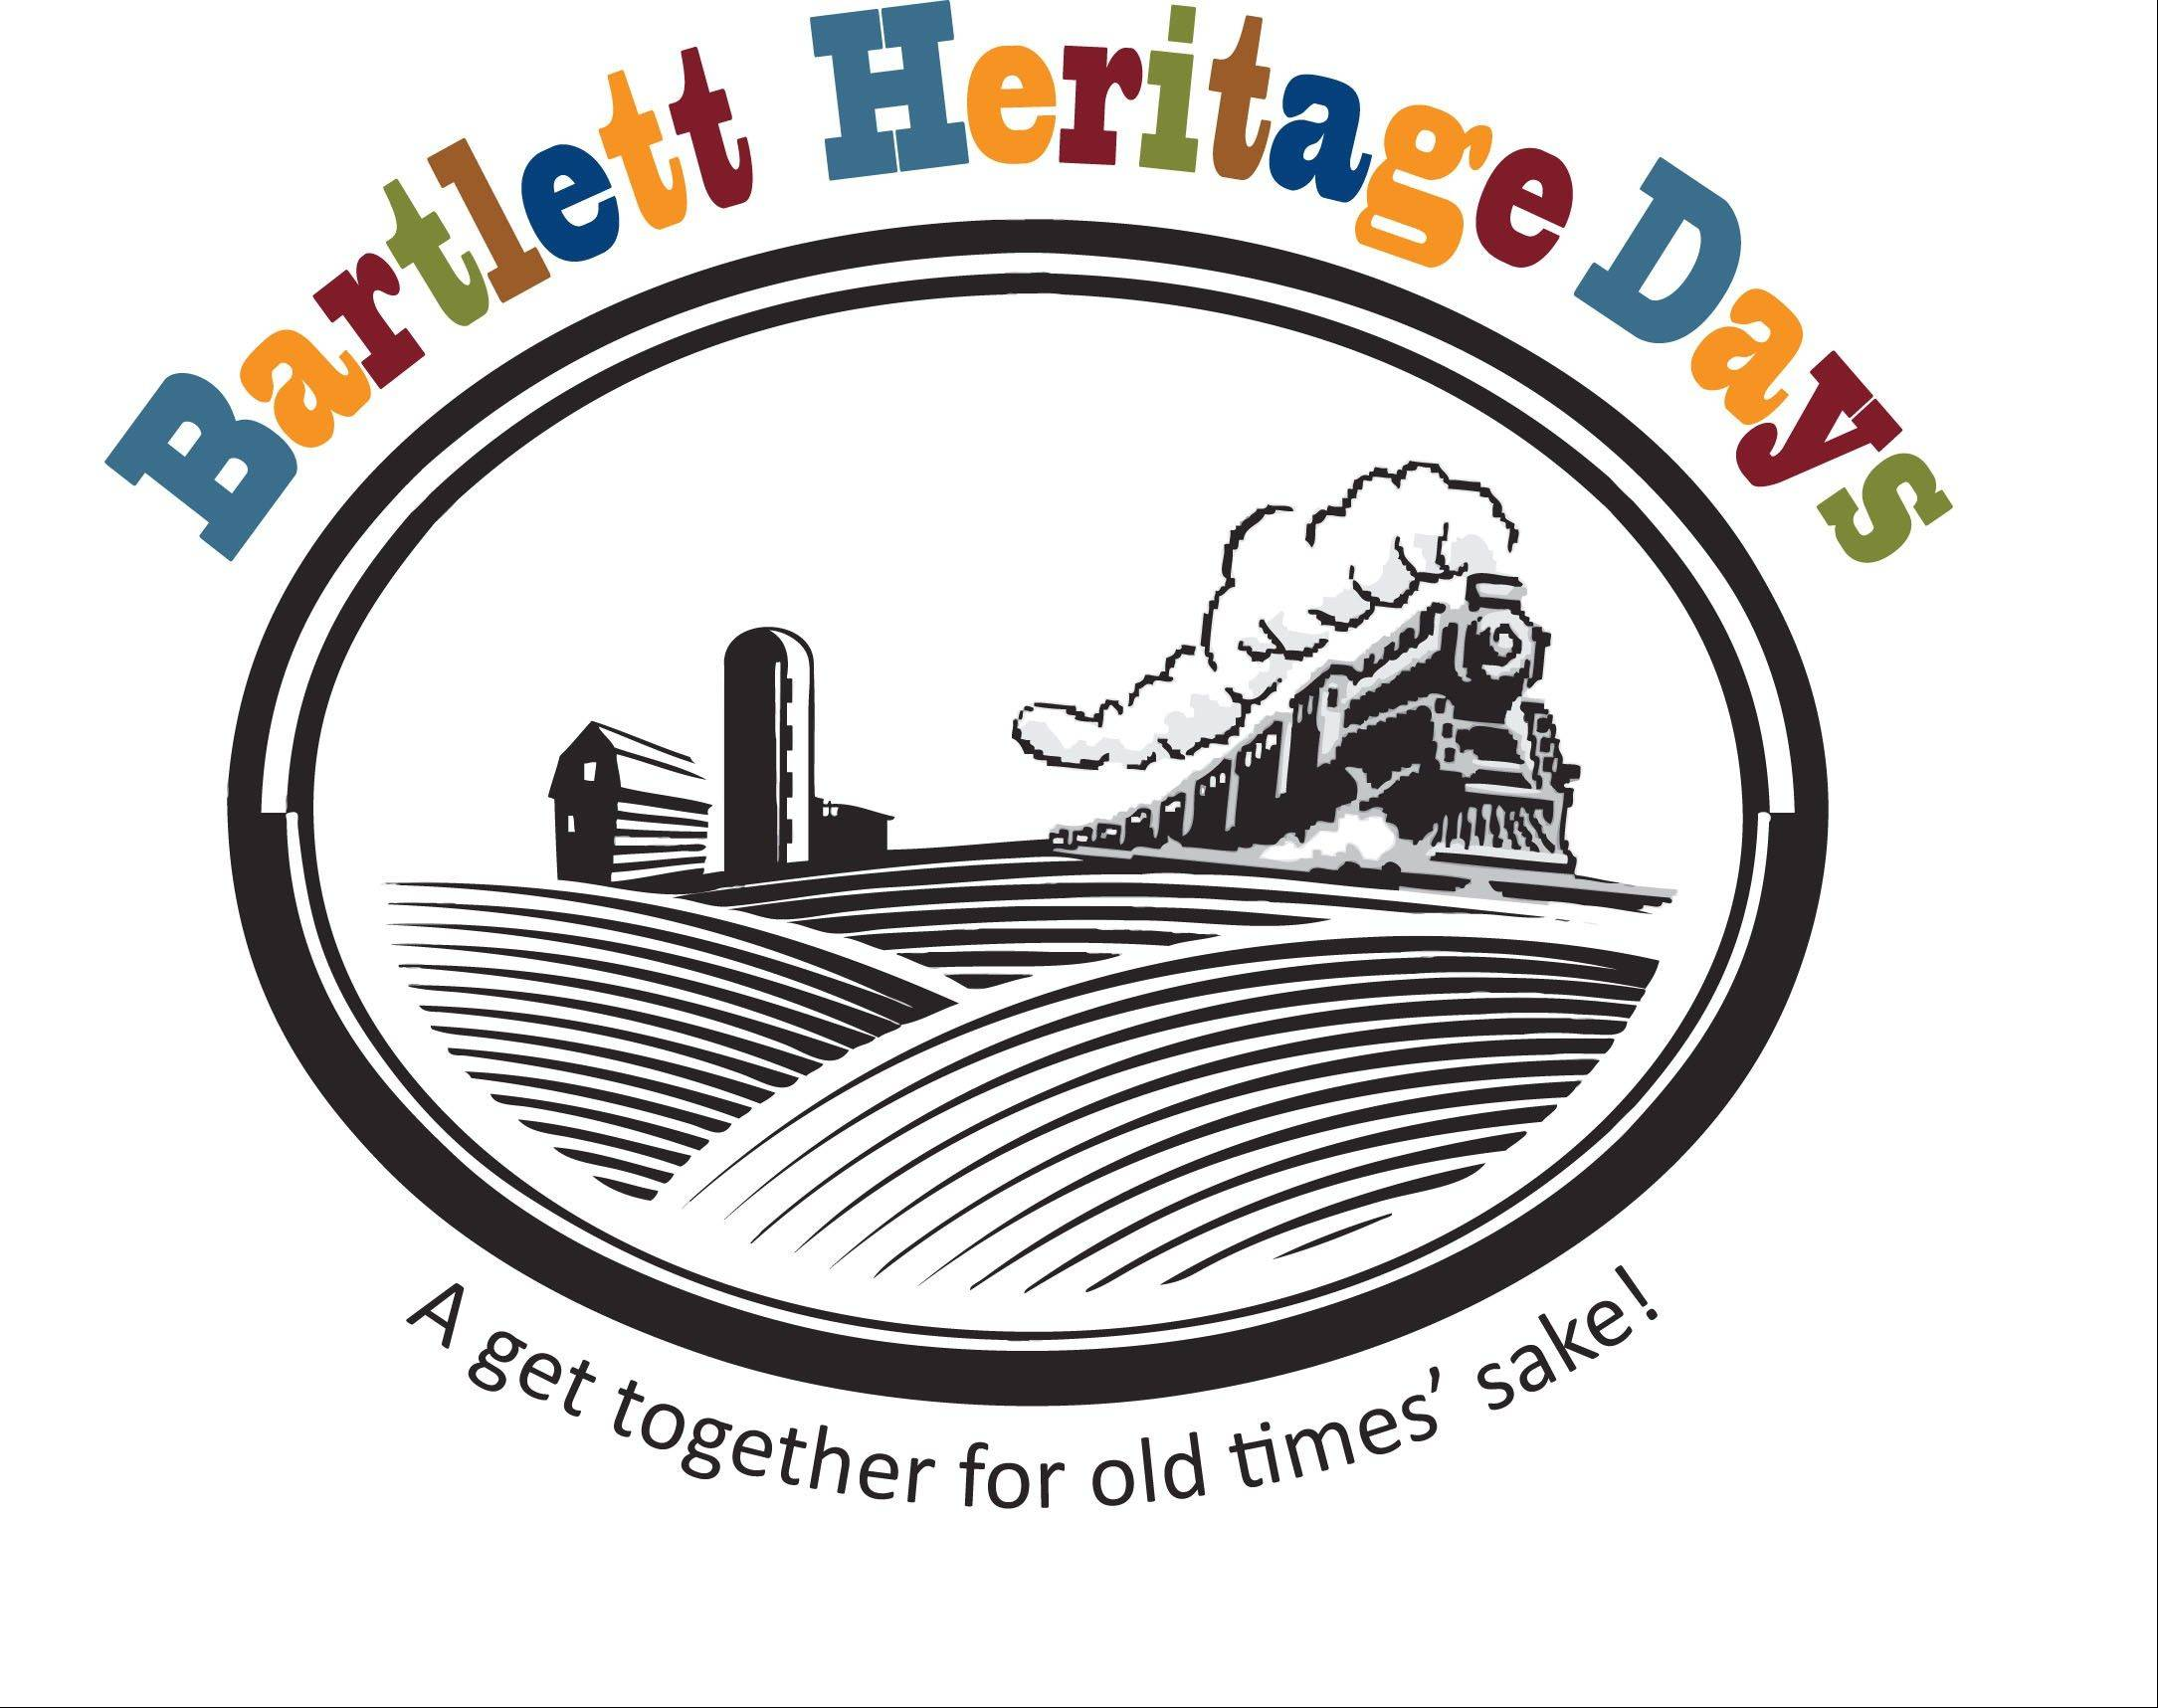 The Bartlett Heritage Days logo